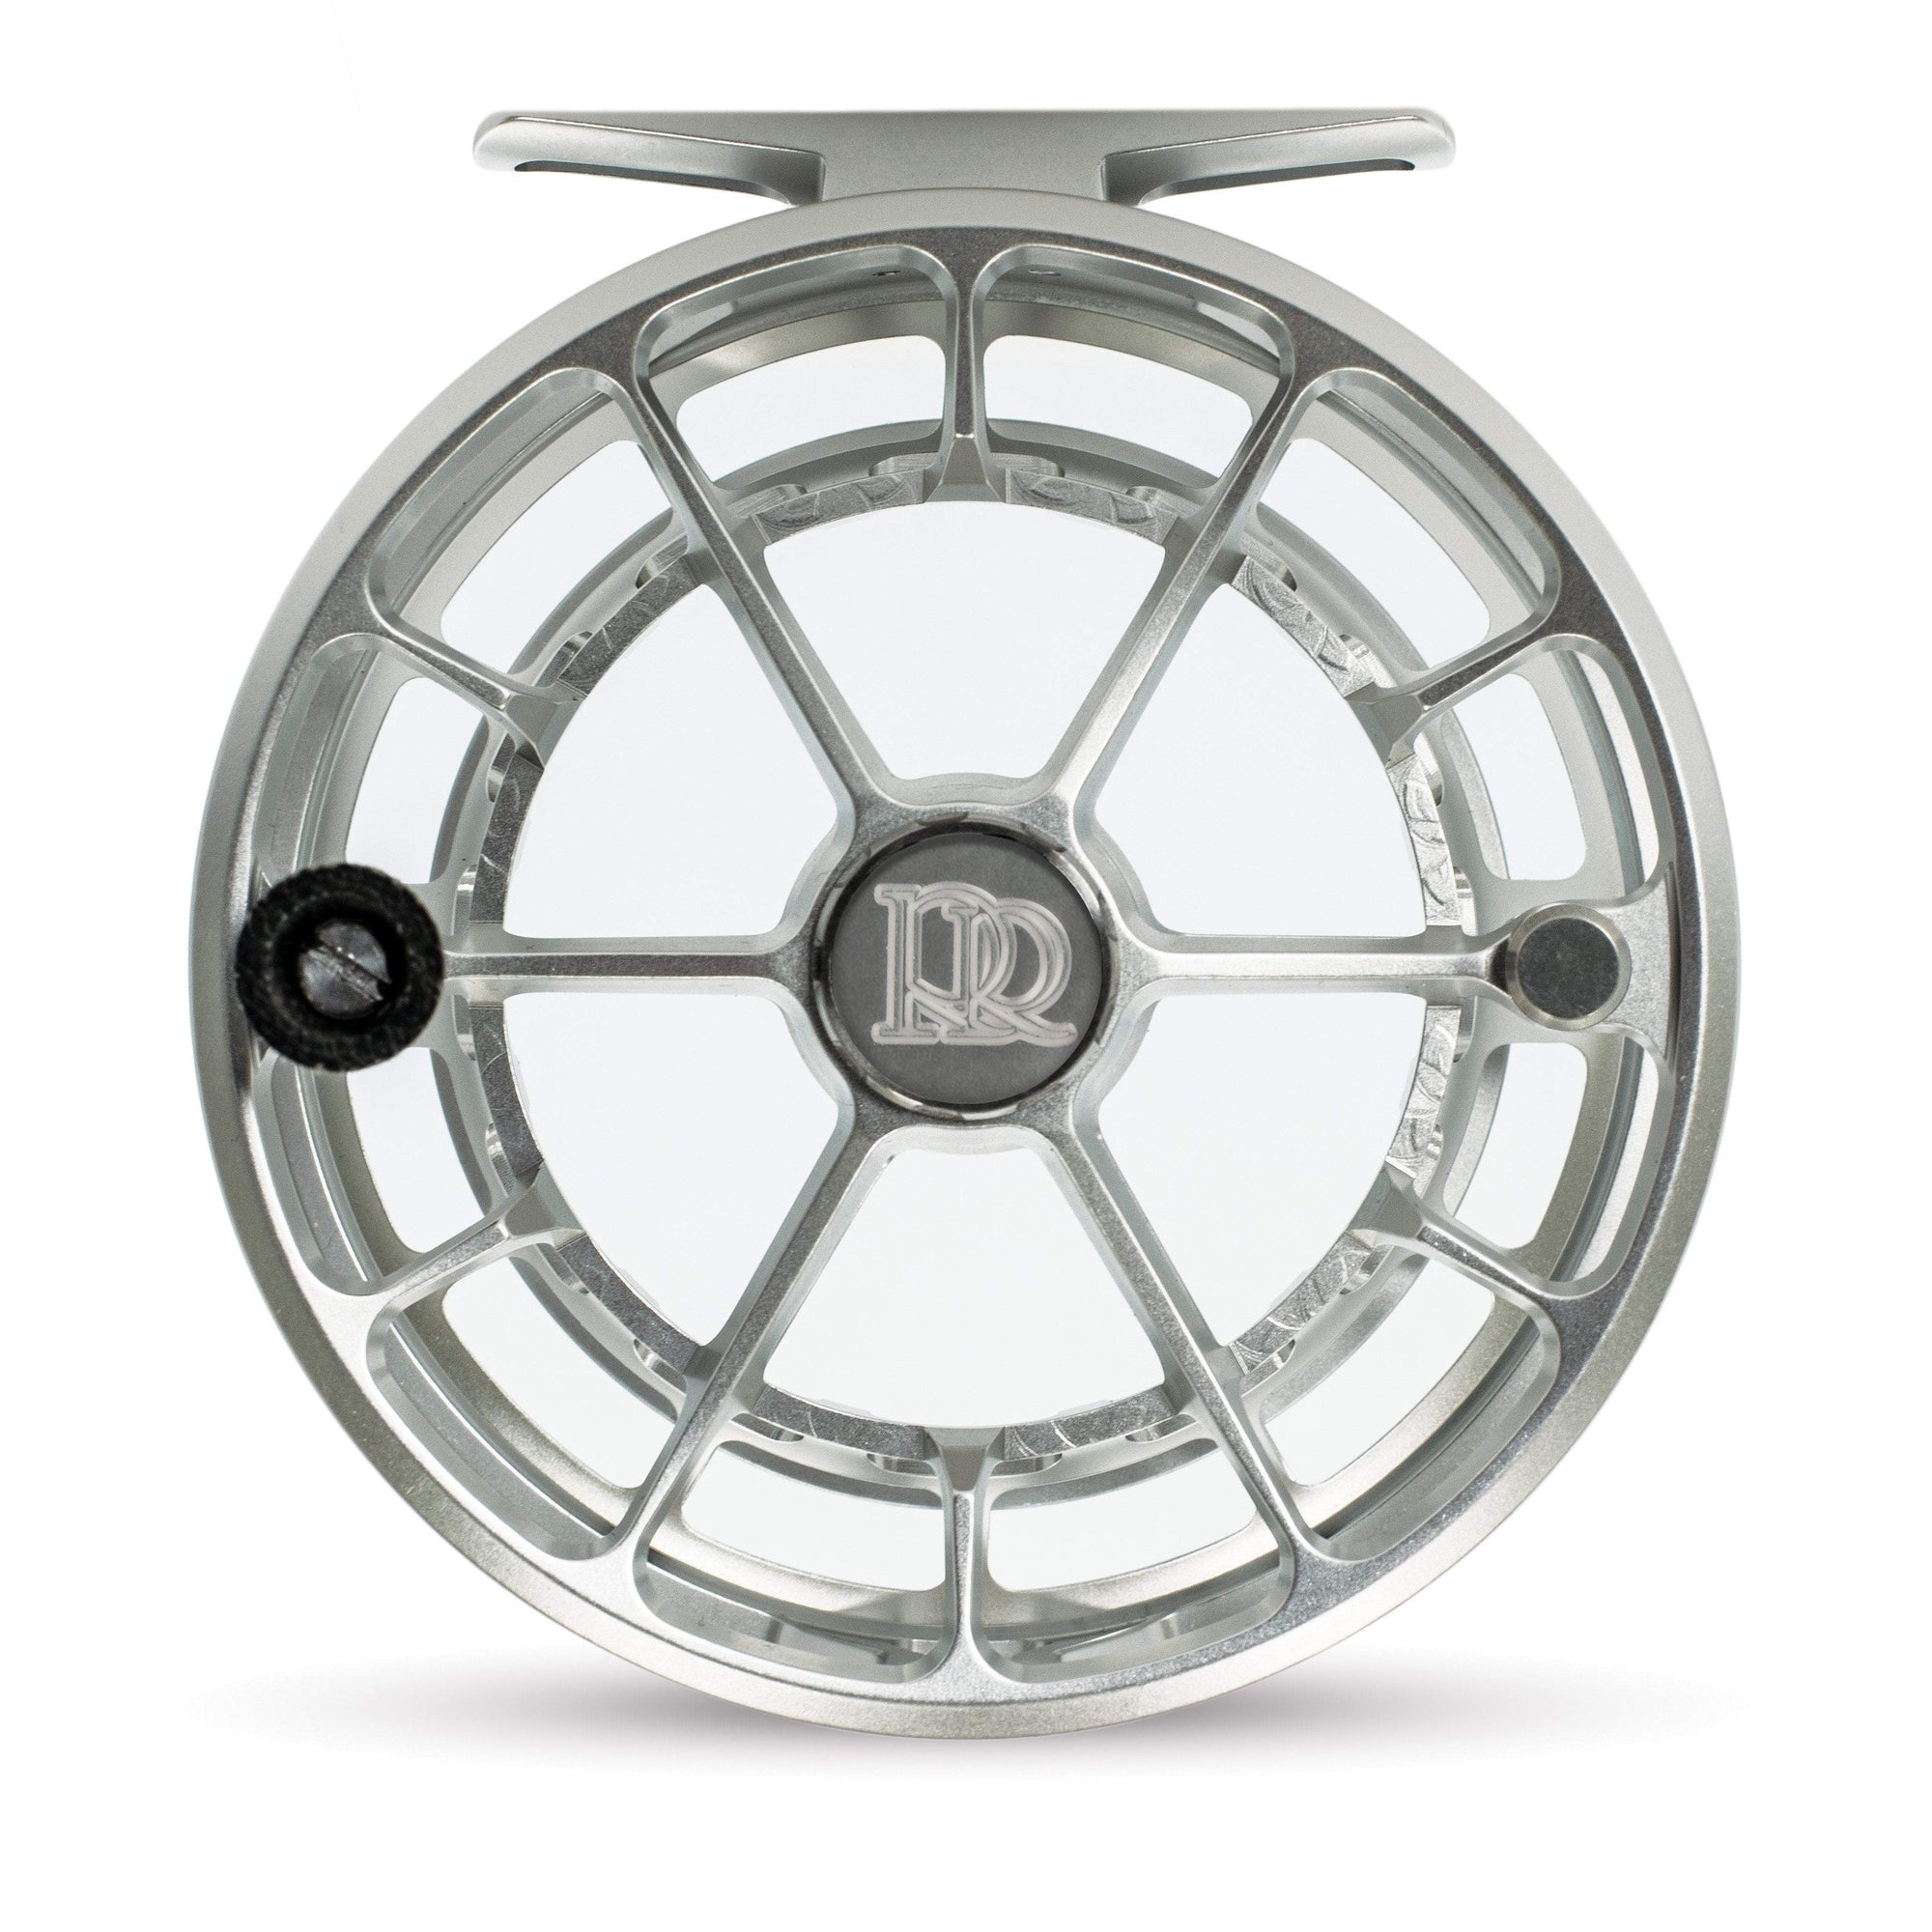 Ross Reels Ross Evolution R Spool Fly Spools 3/4 / Platinum